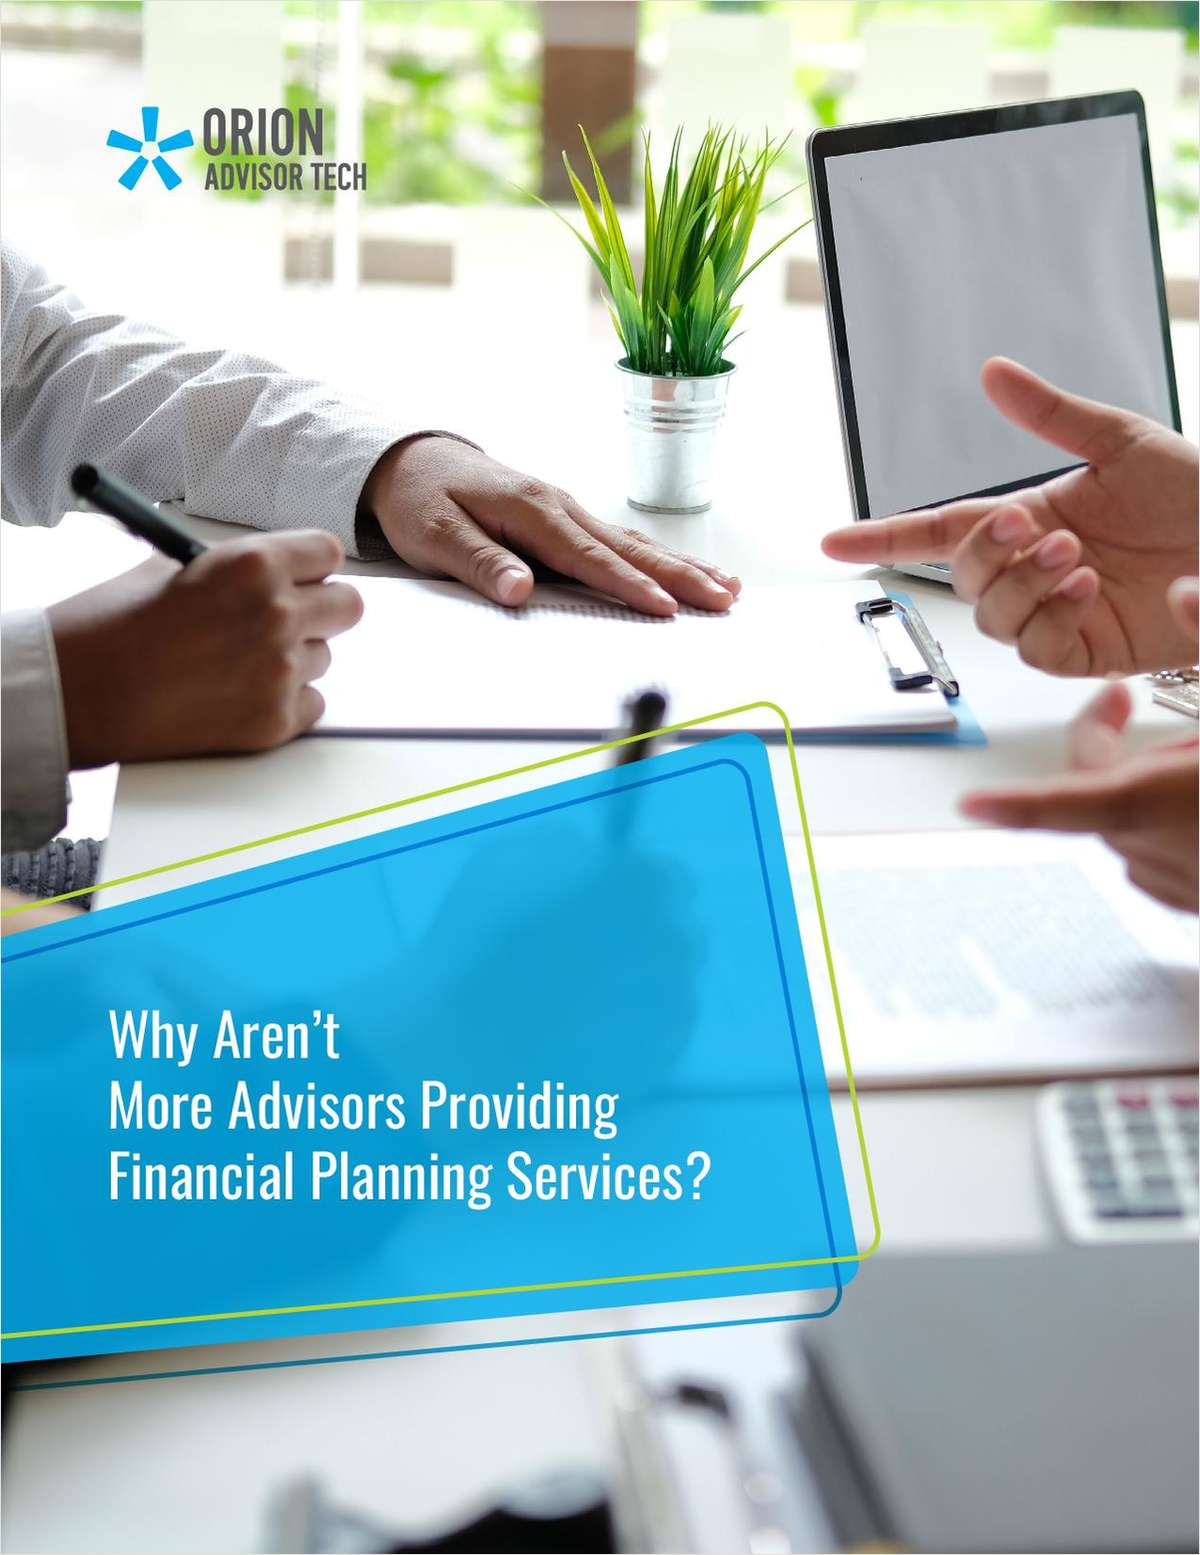 Why Aren't More Advisors Providing Financial Planning Services?